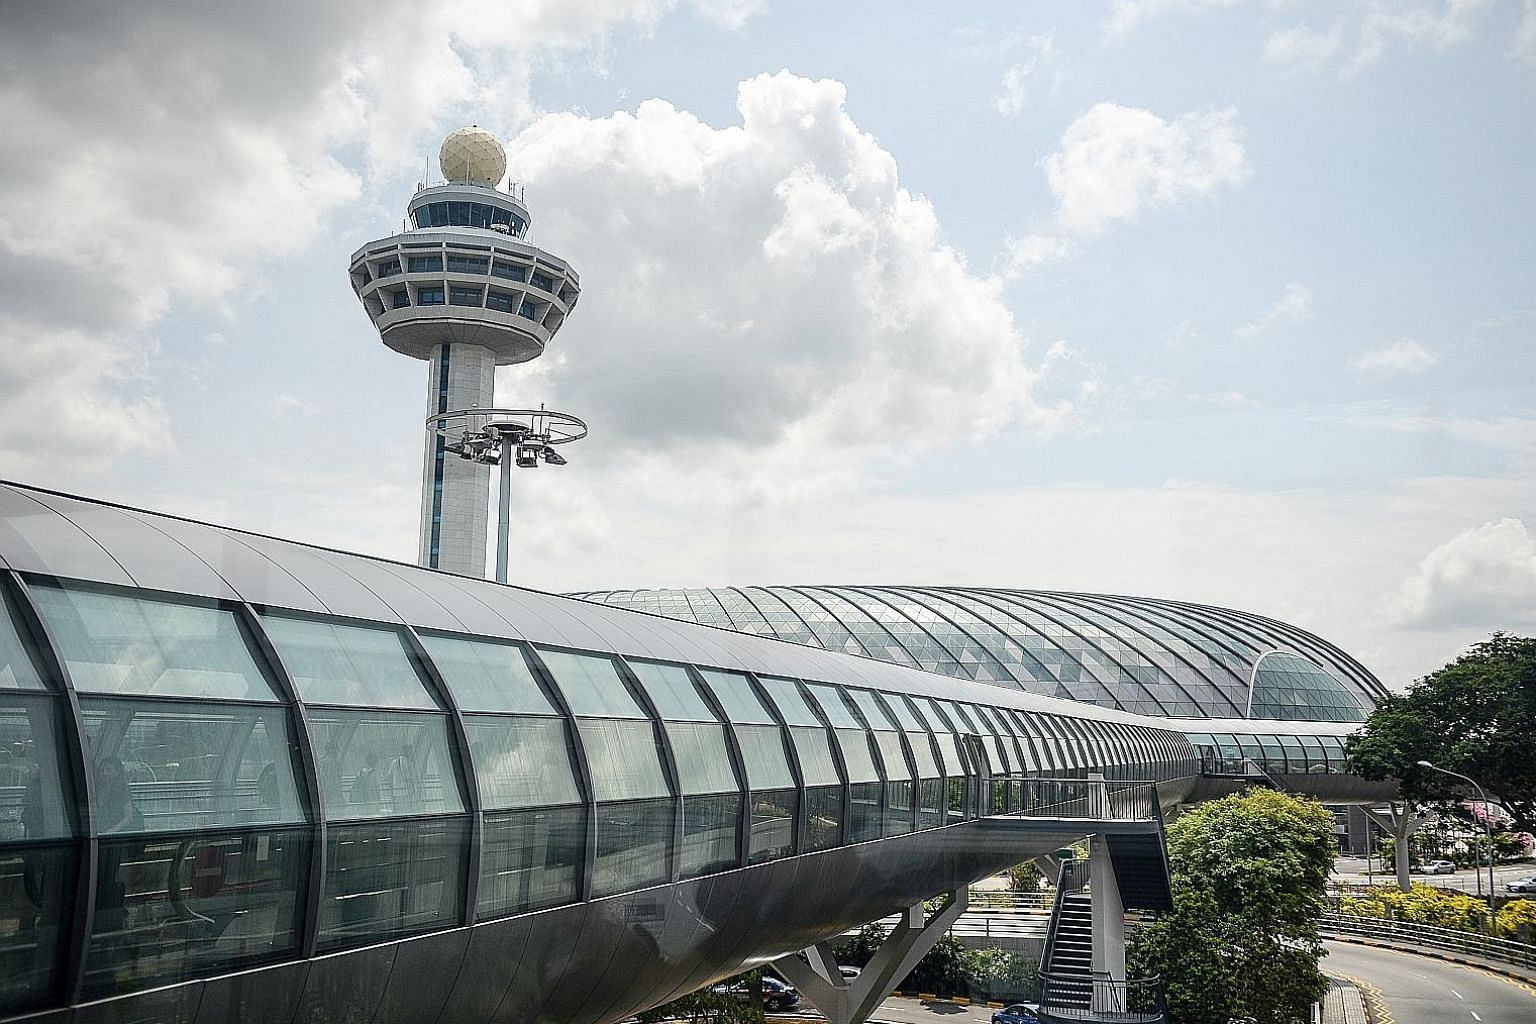 There was no fire in the control tower and investigations into why the fire alarm was activated are still ongoing, said an aviation authority official.